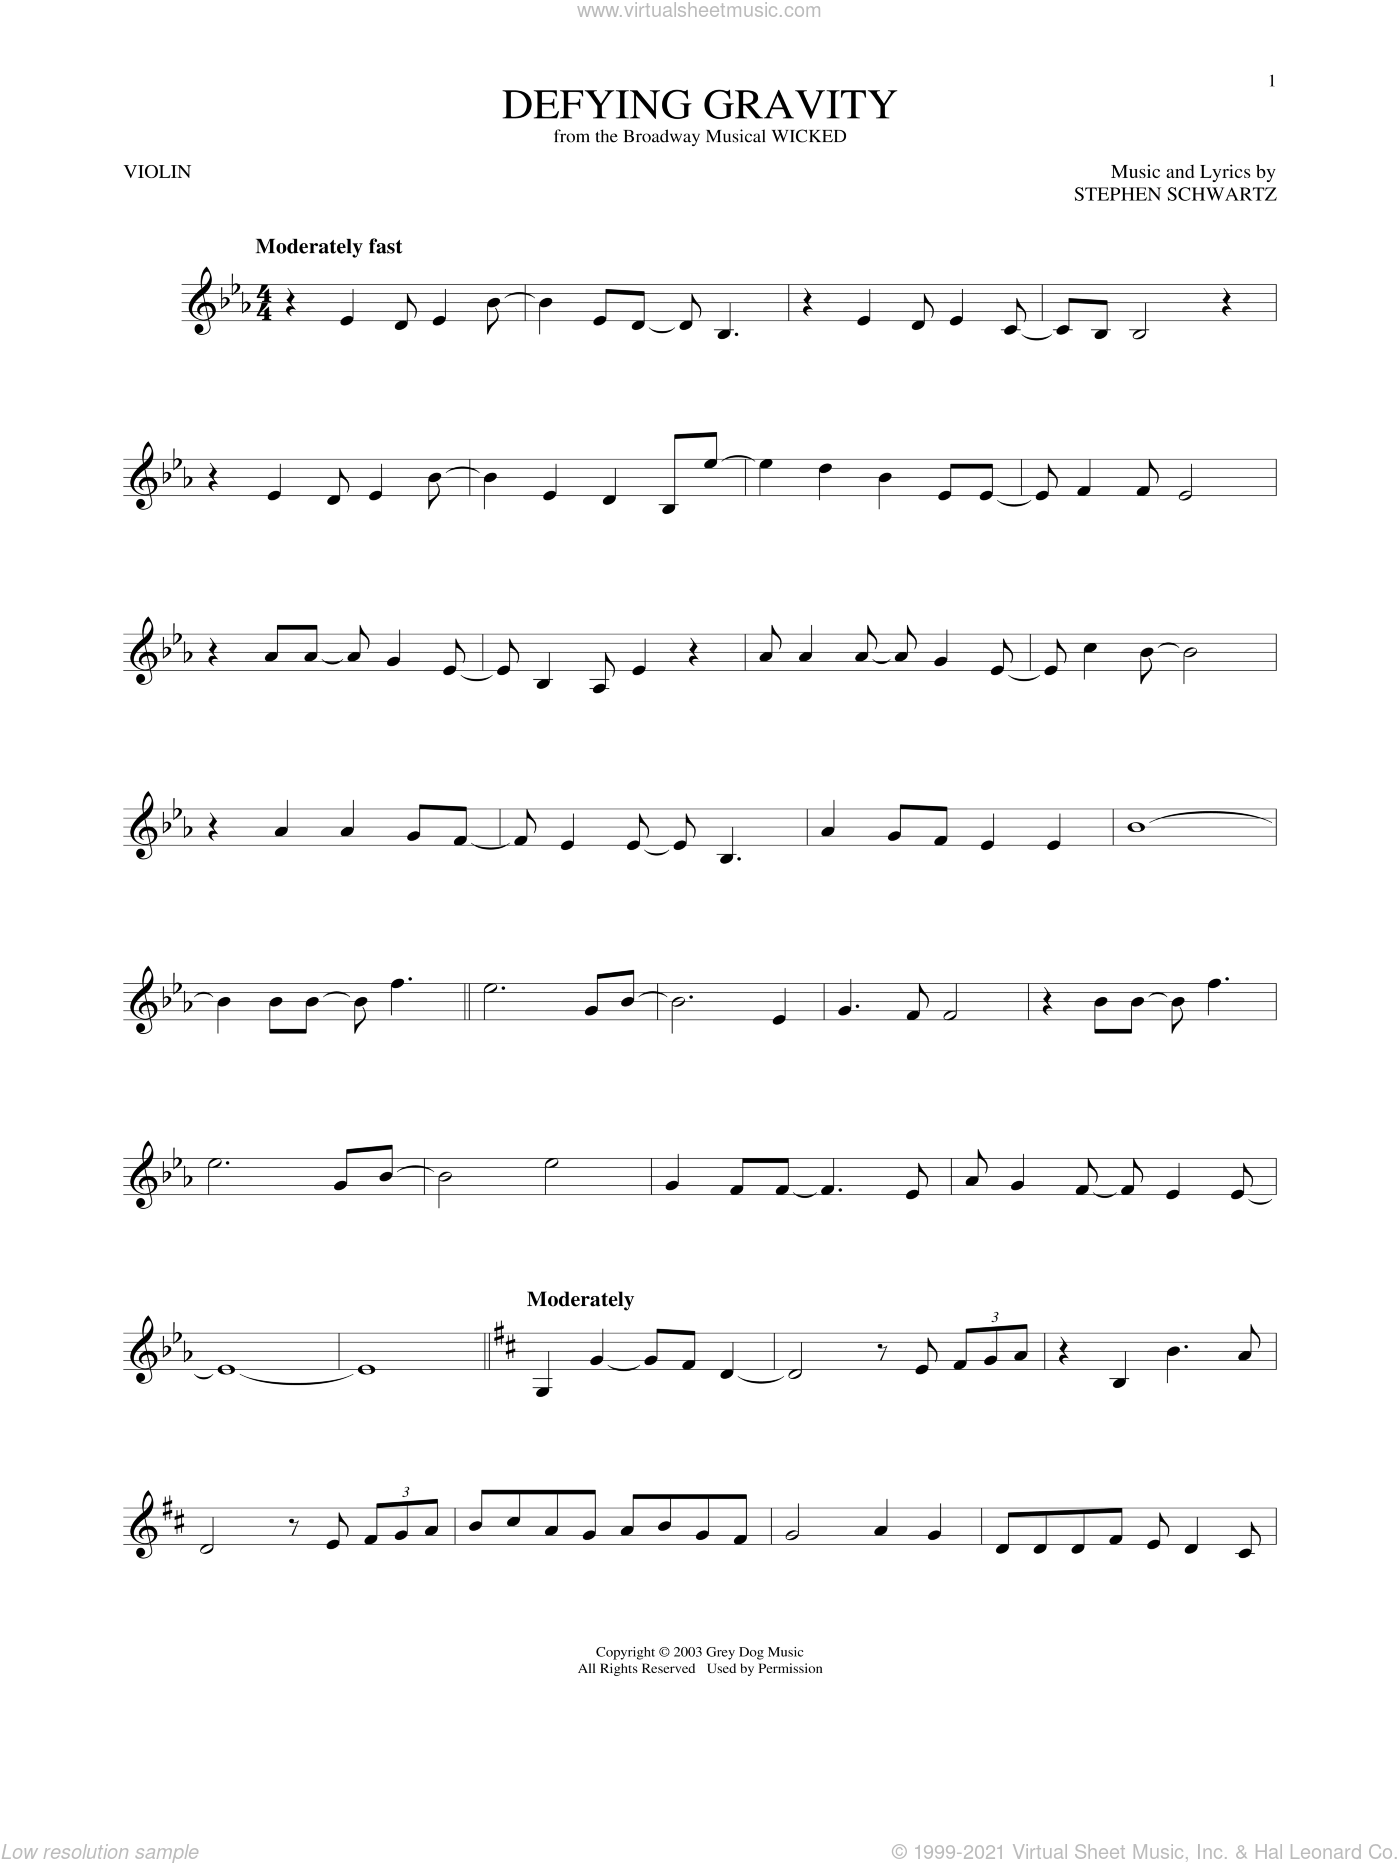 Defying Gravity (from Wicked) sheet music for violin solo by Stephen Schwartz, intermediate skill level